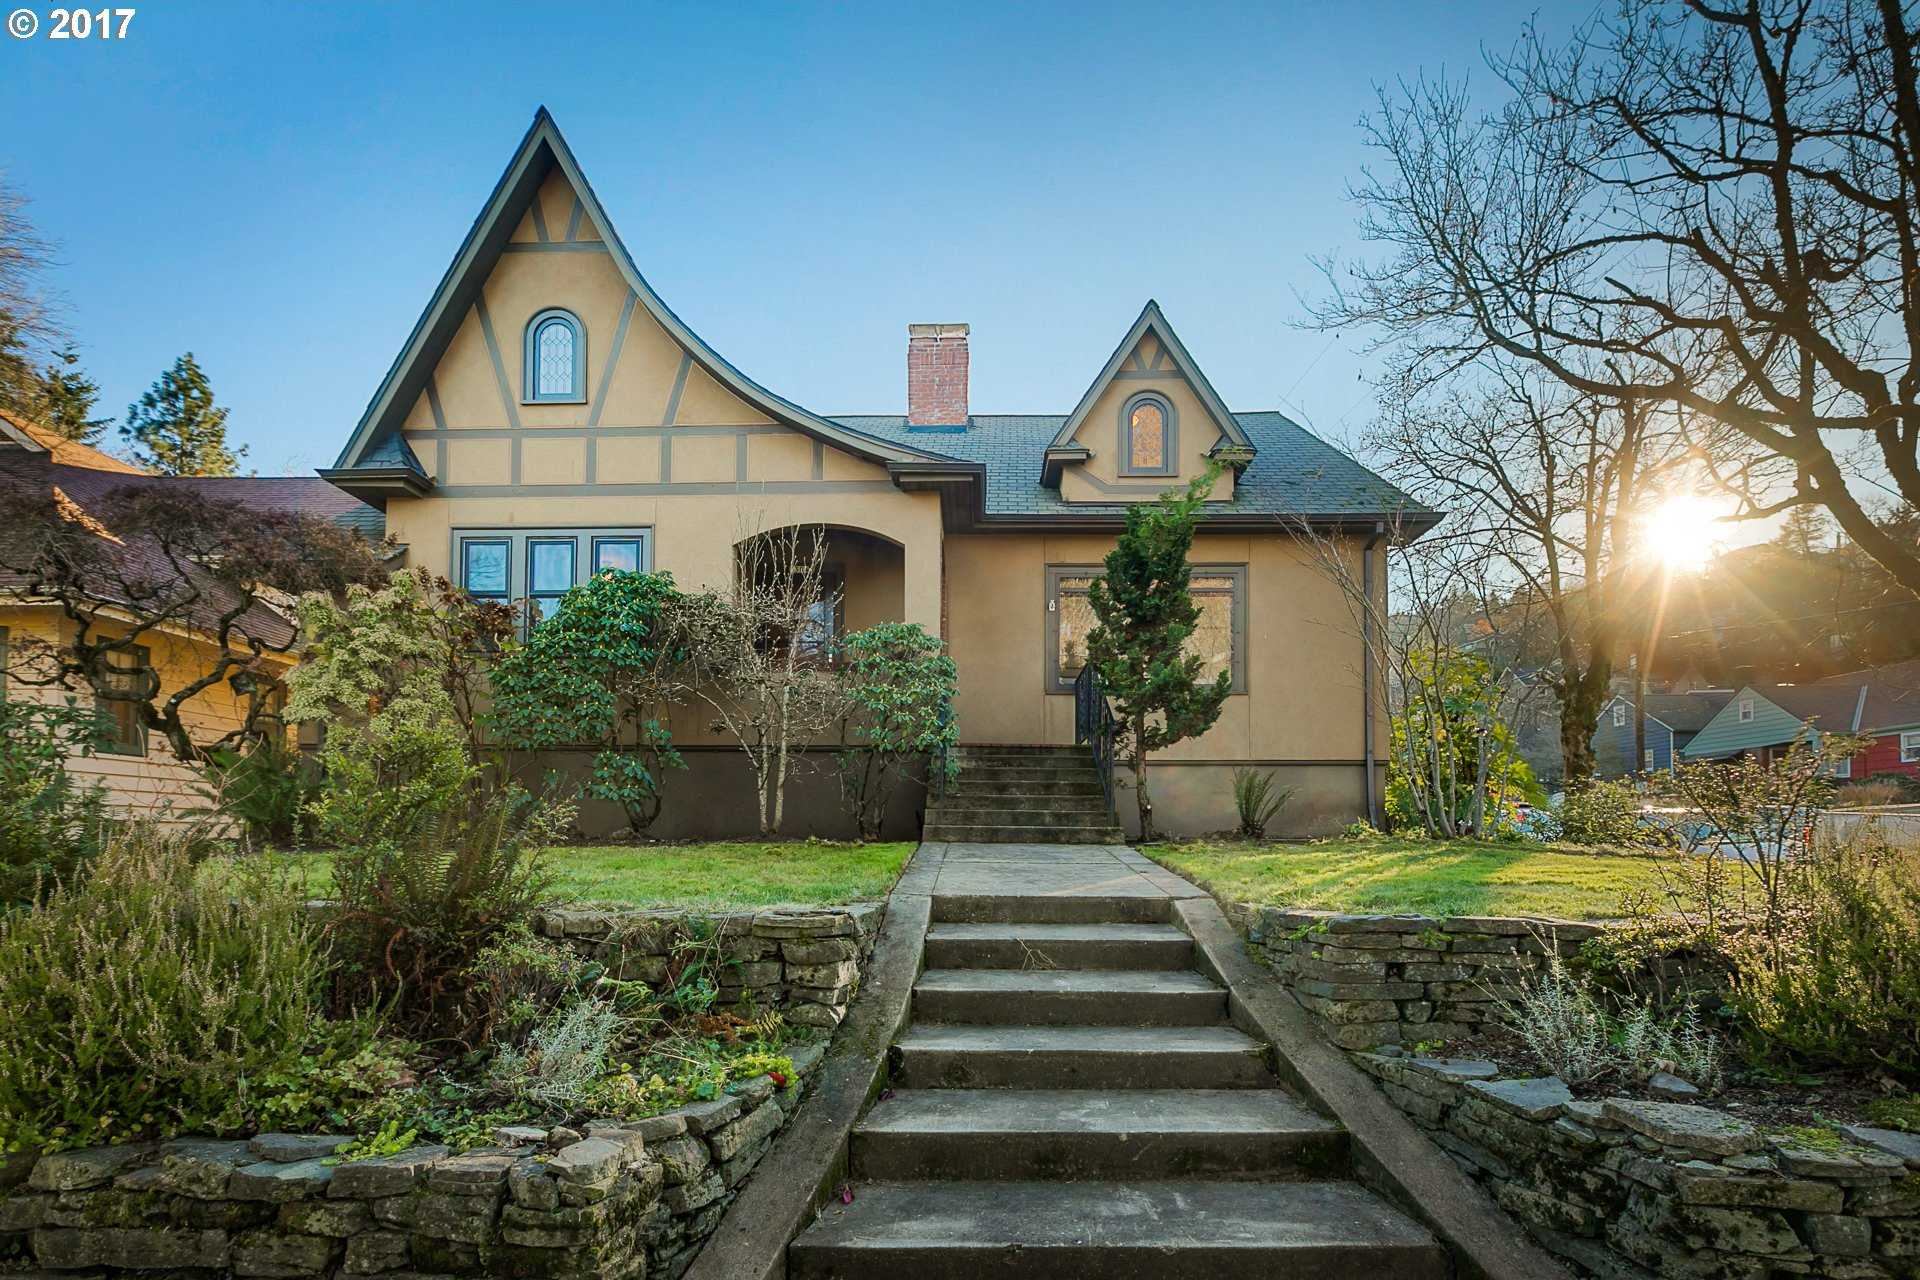 $1,695,000 - 5Br/4Ba -  for Sale in Northwest Portland, Portland